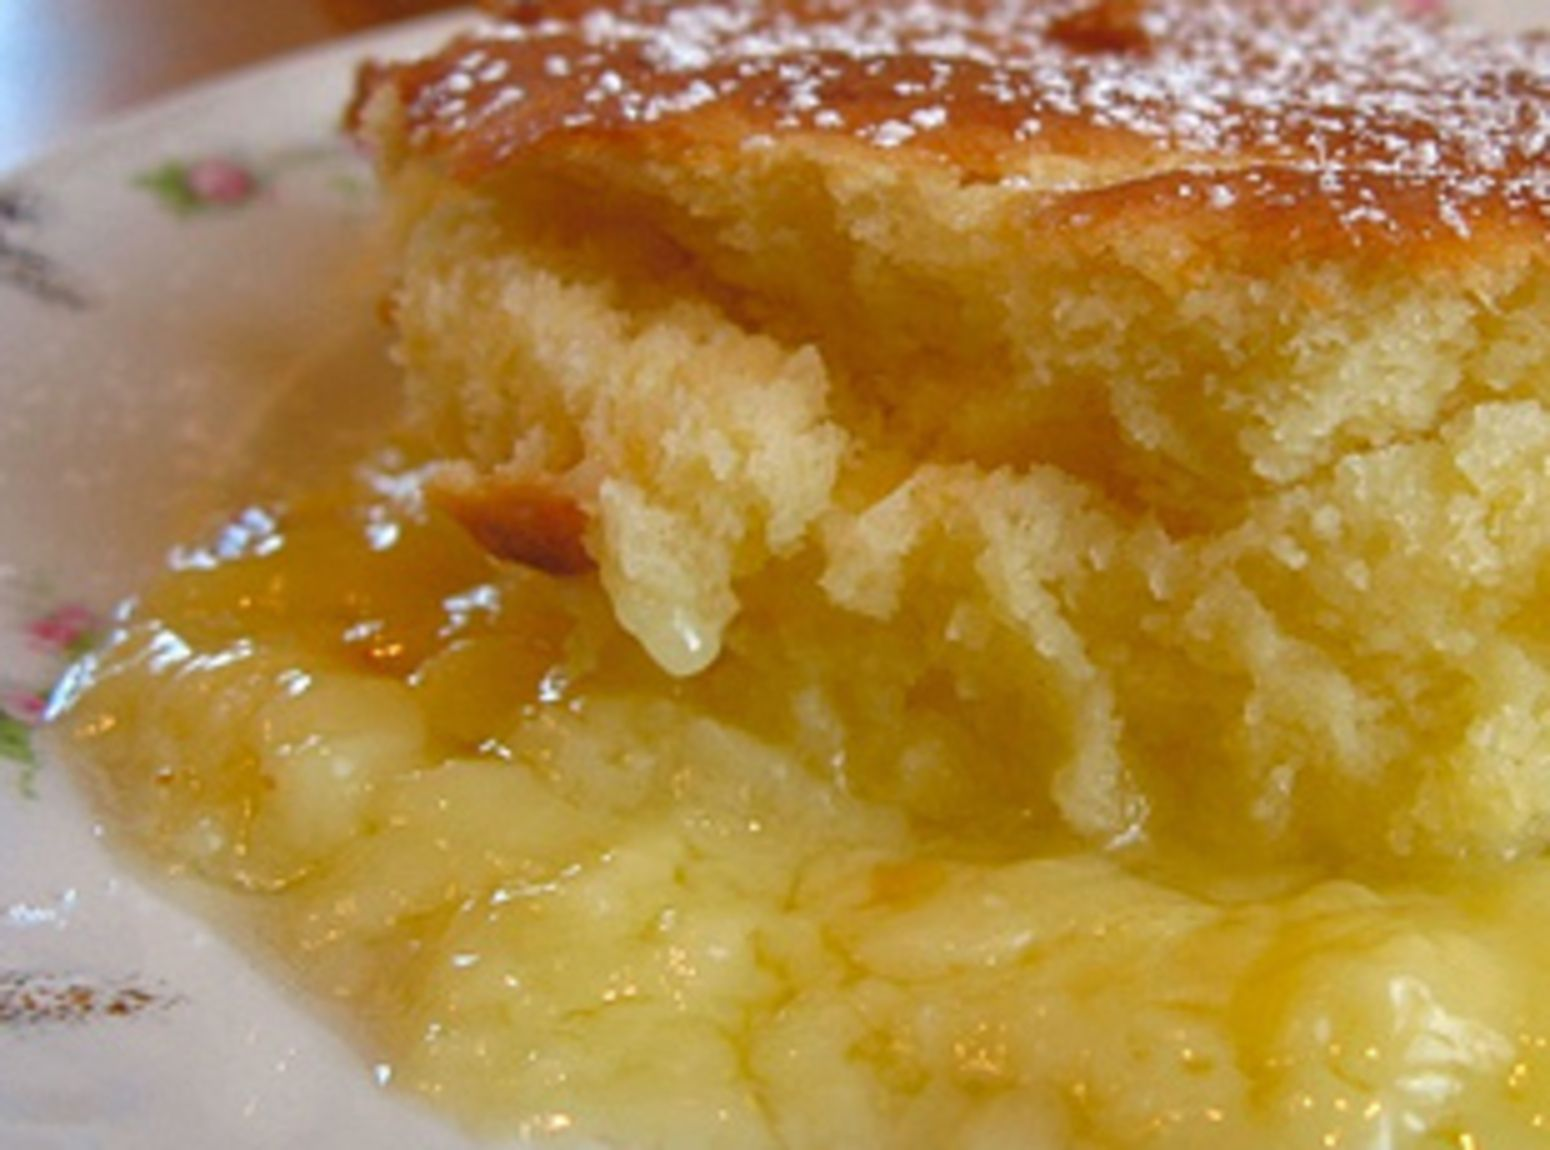 Recipe Cake Mix Lemon Pudding: Crockpot Lemon Pudding Cake